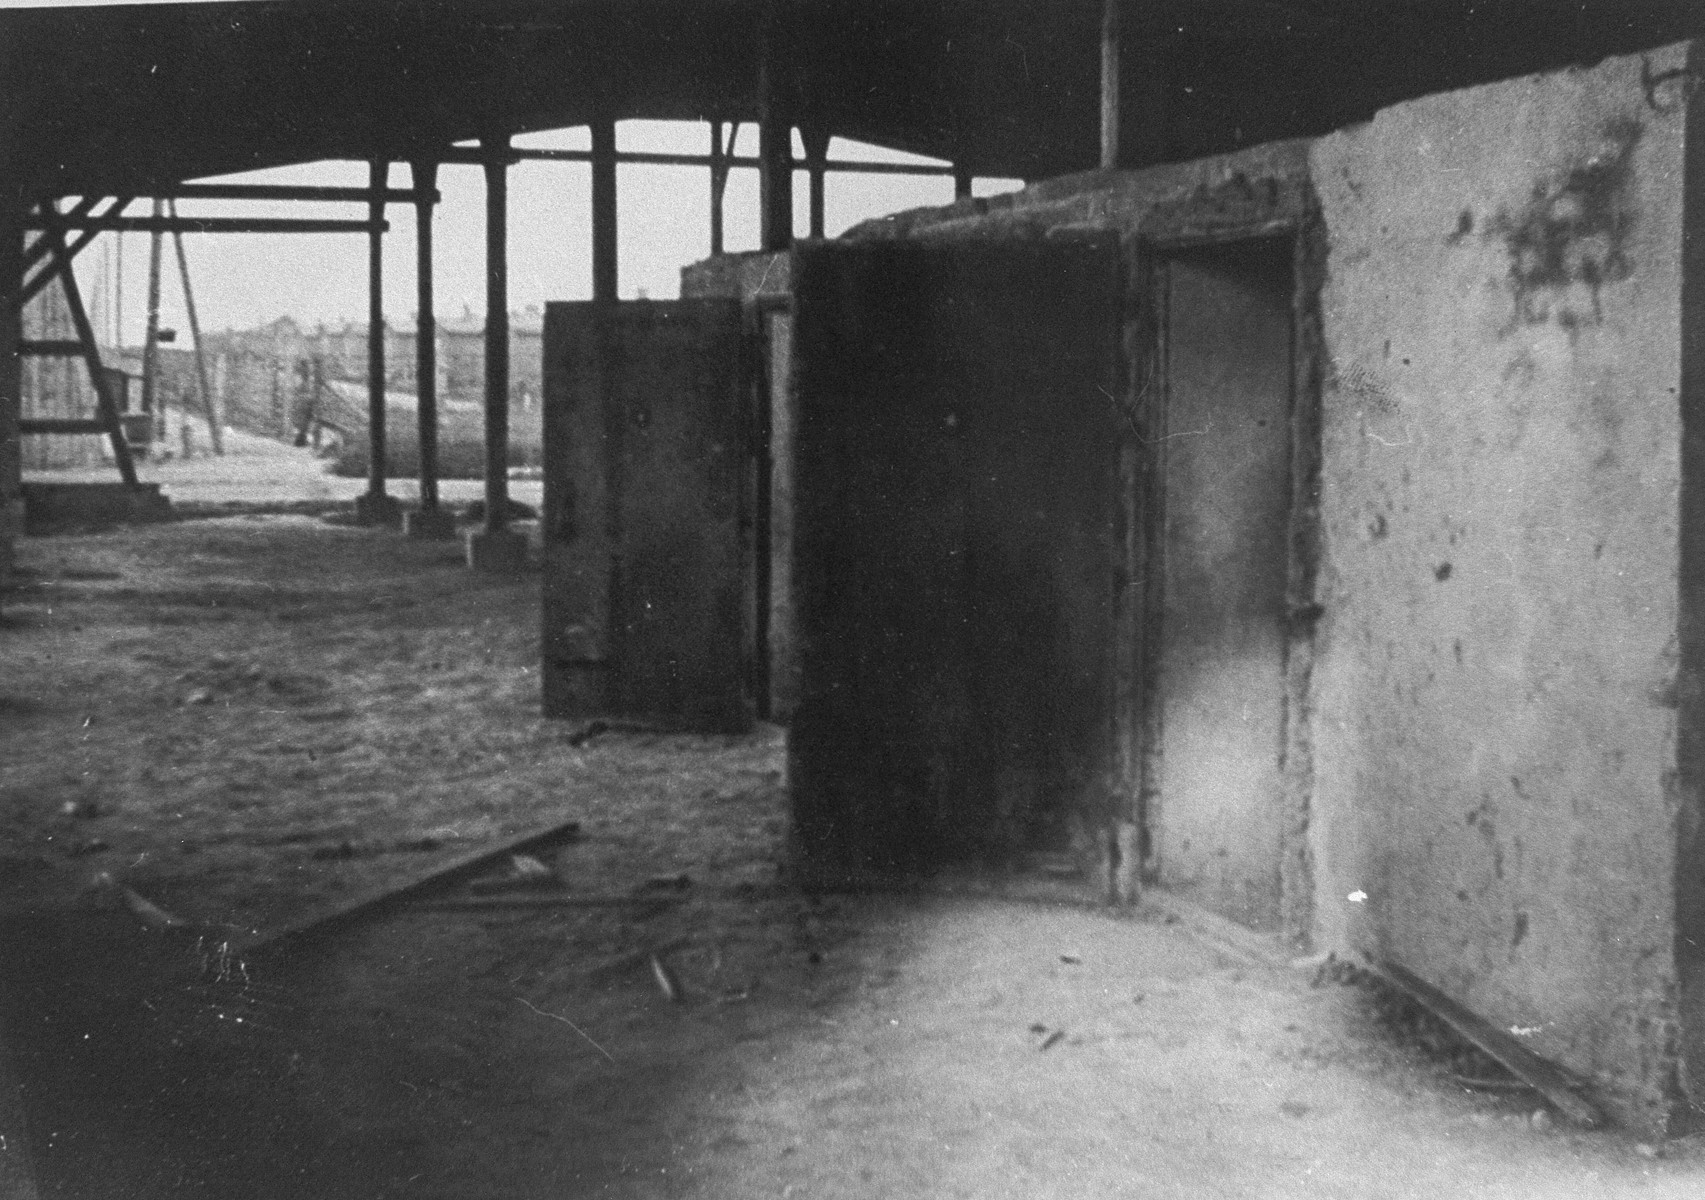 View of the gas chambers at Majdanek after the liberation.